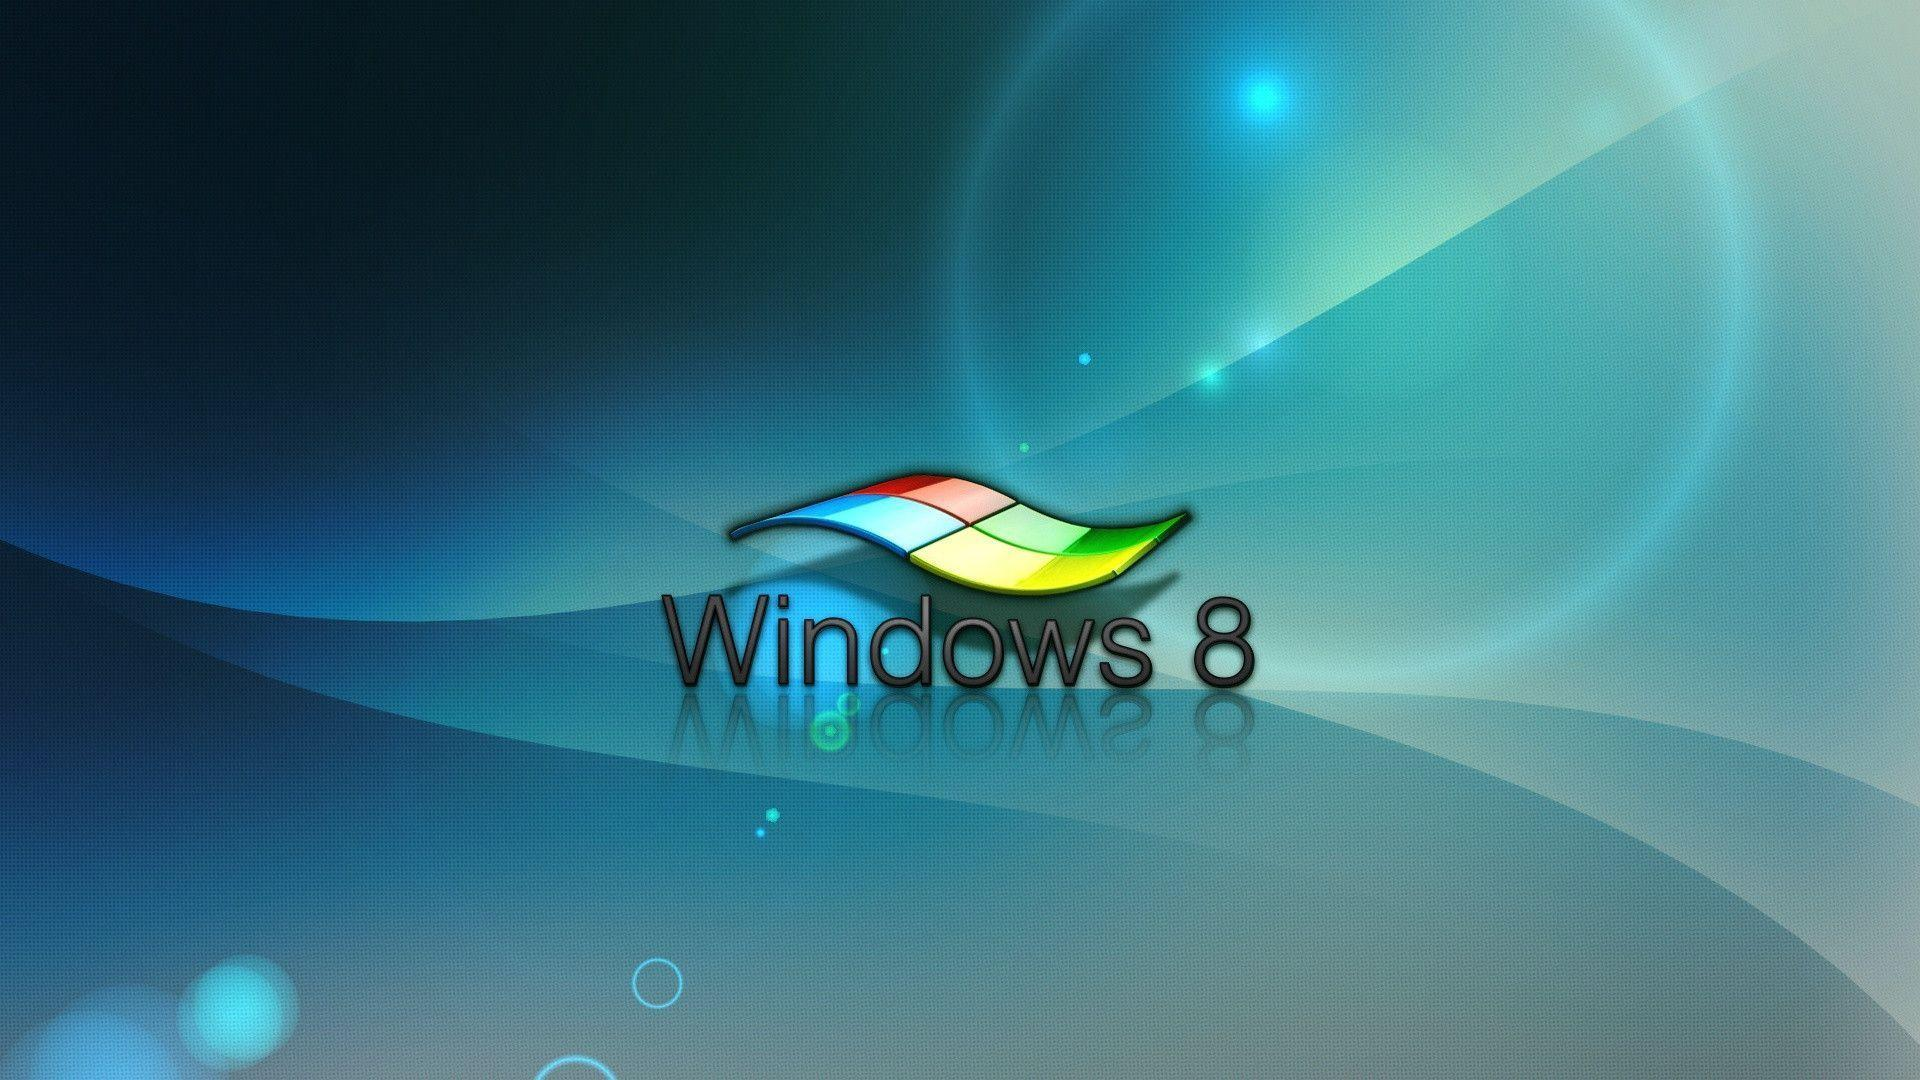 Windows 8 3D Wallpapers - Wallpaper Cave